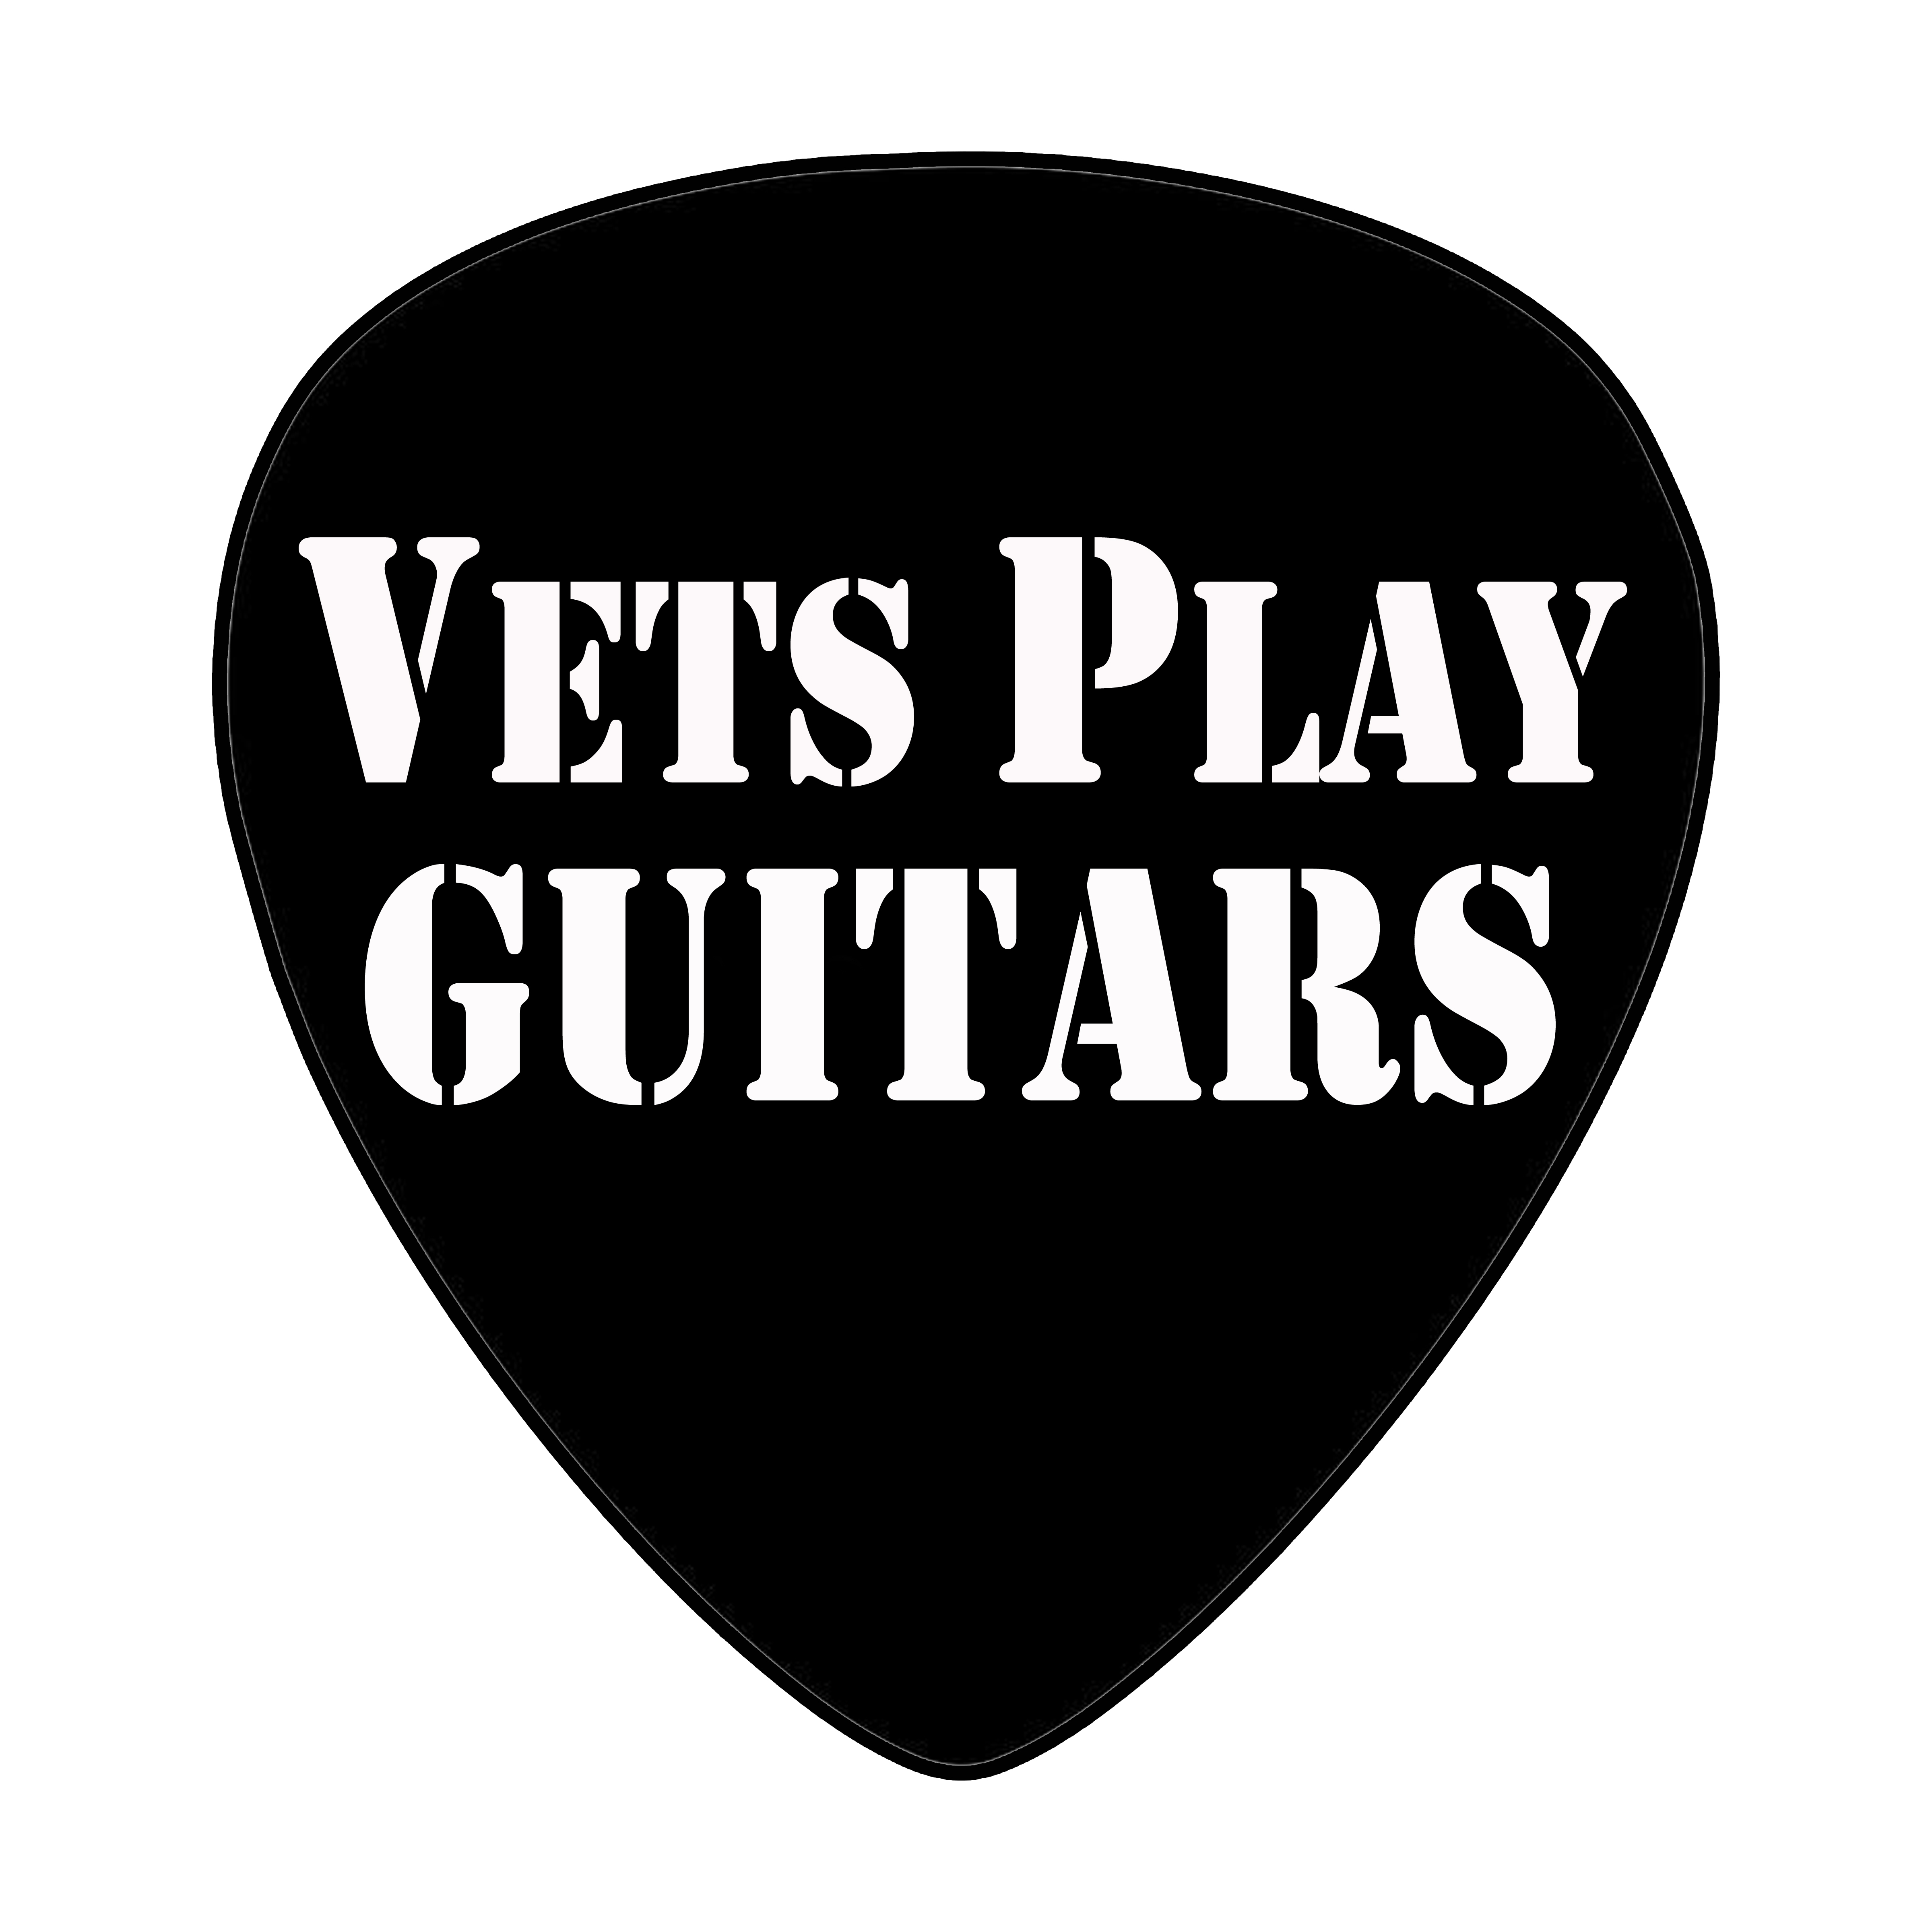 Vets Play Guitars – What Is It All About?